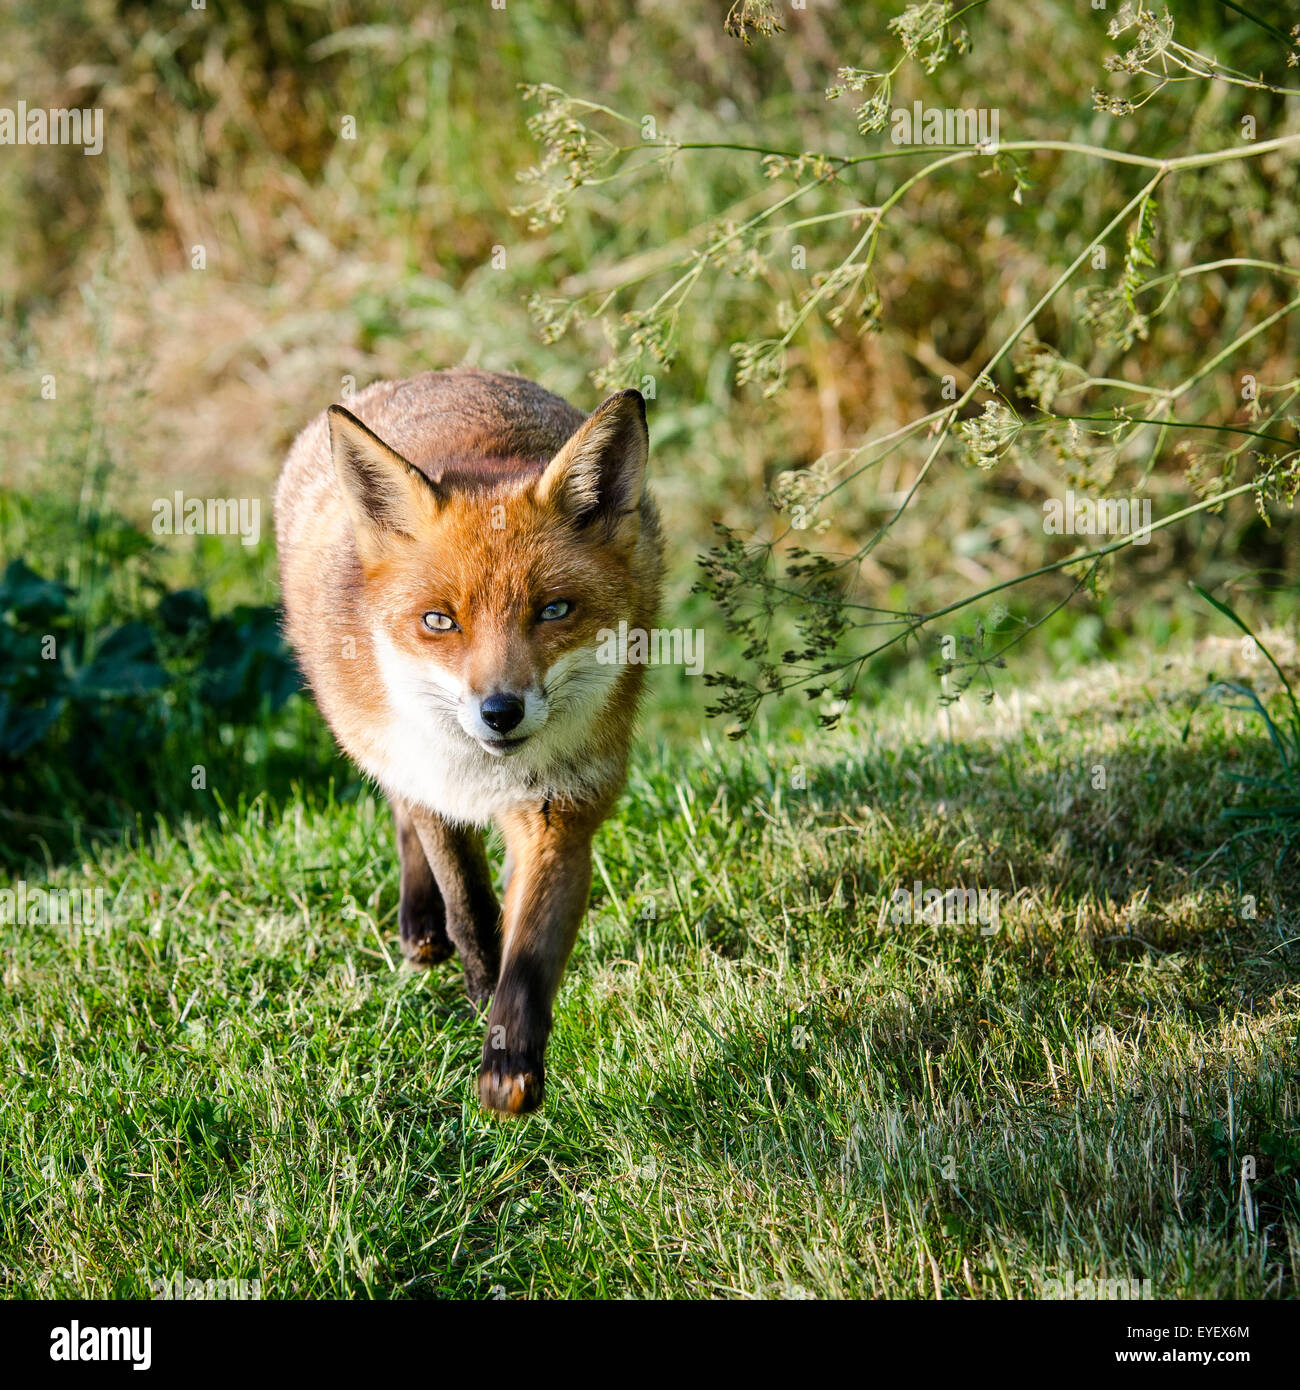 European Fox (Vulpes vulpes) walking through field, UK. - Stock Image